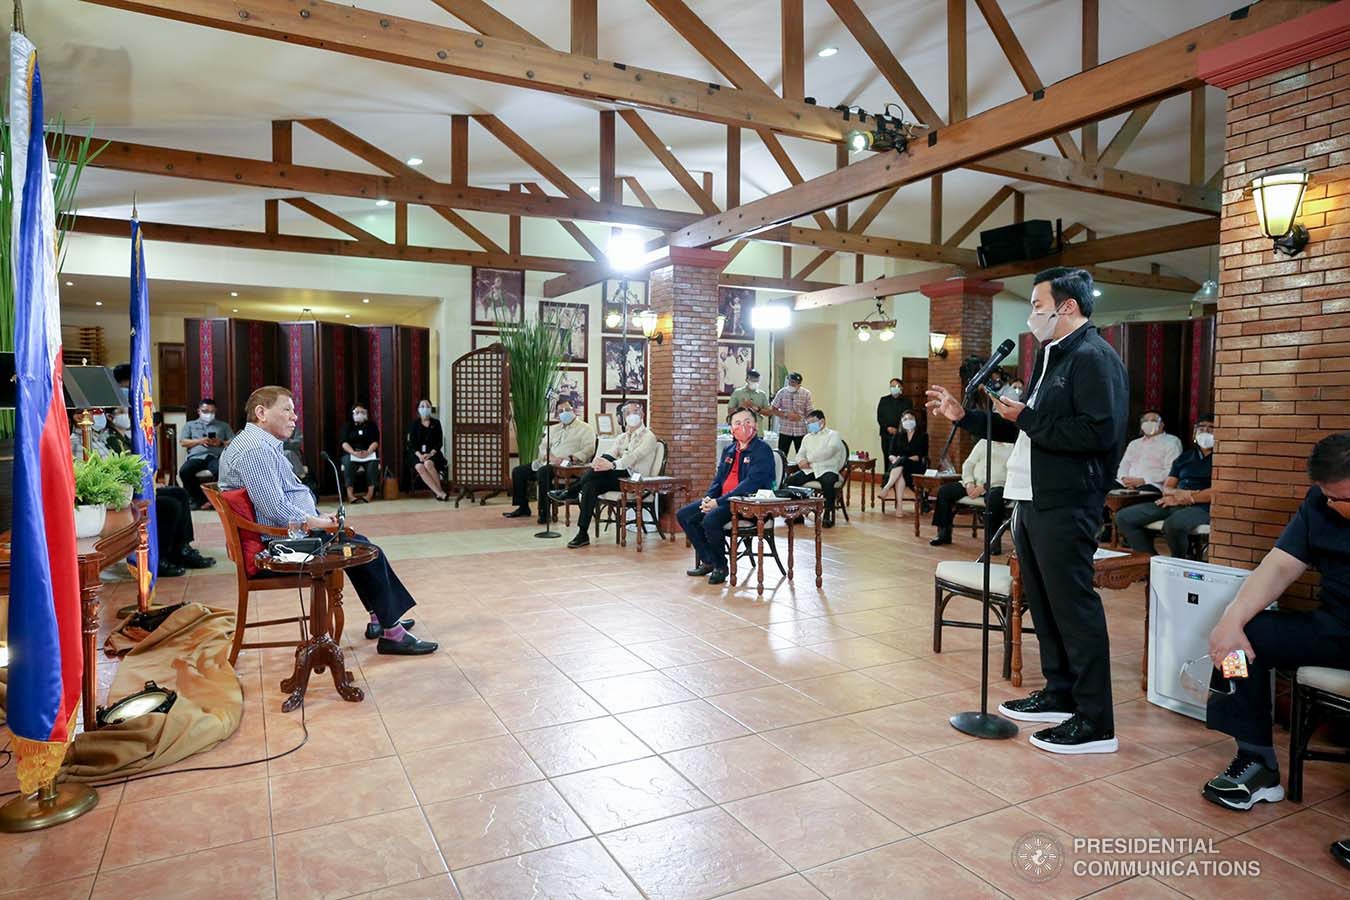 President Rodrigo Roa Duterte listens as Marinduque Representative Lord Allan Jay Velasco shares some remarks during a meeting with House Speaker Alan Peter Cayetano and several members of the House of Representatives at the Malacañang Golf (MALAGO) Clubhouse in Malacañang Park, Manila on September 29, 2020. The President called on Cayetano and Velasco, who were accompanied by their respective partymates and supporters in the Lower House, to discuss matters affecting Congress lately. RICHARD MADELO/PRESIDENTIAL PHOTO